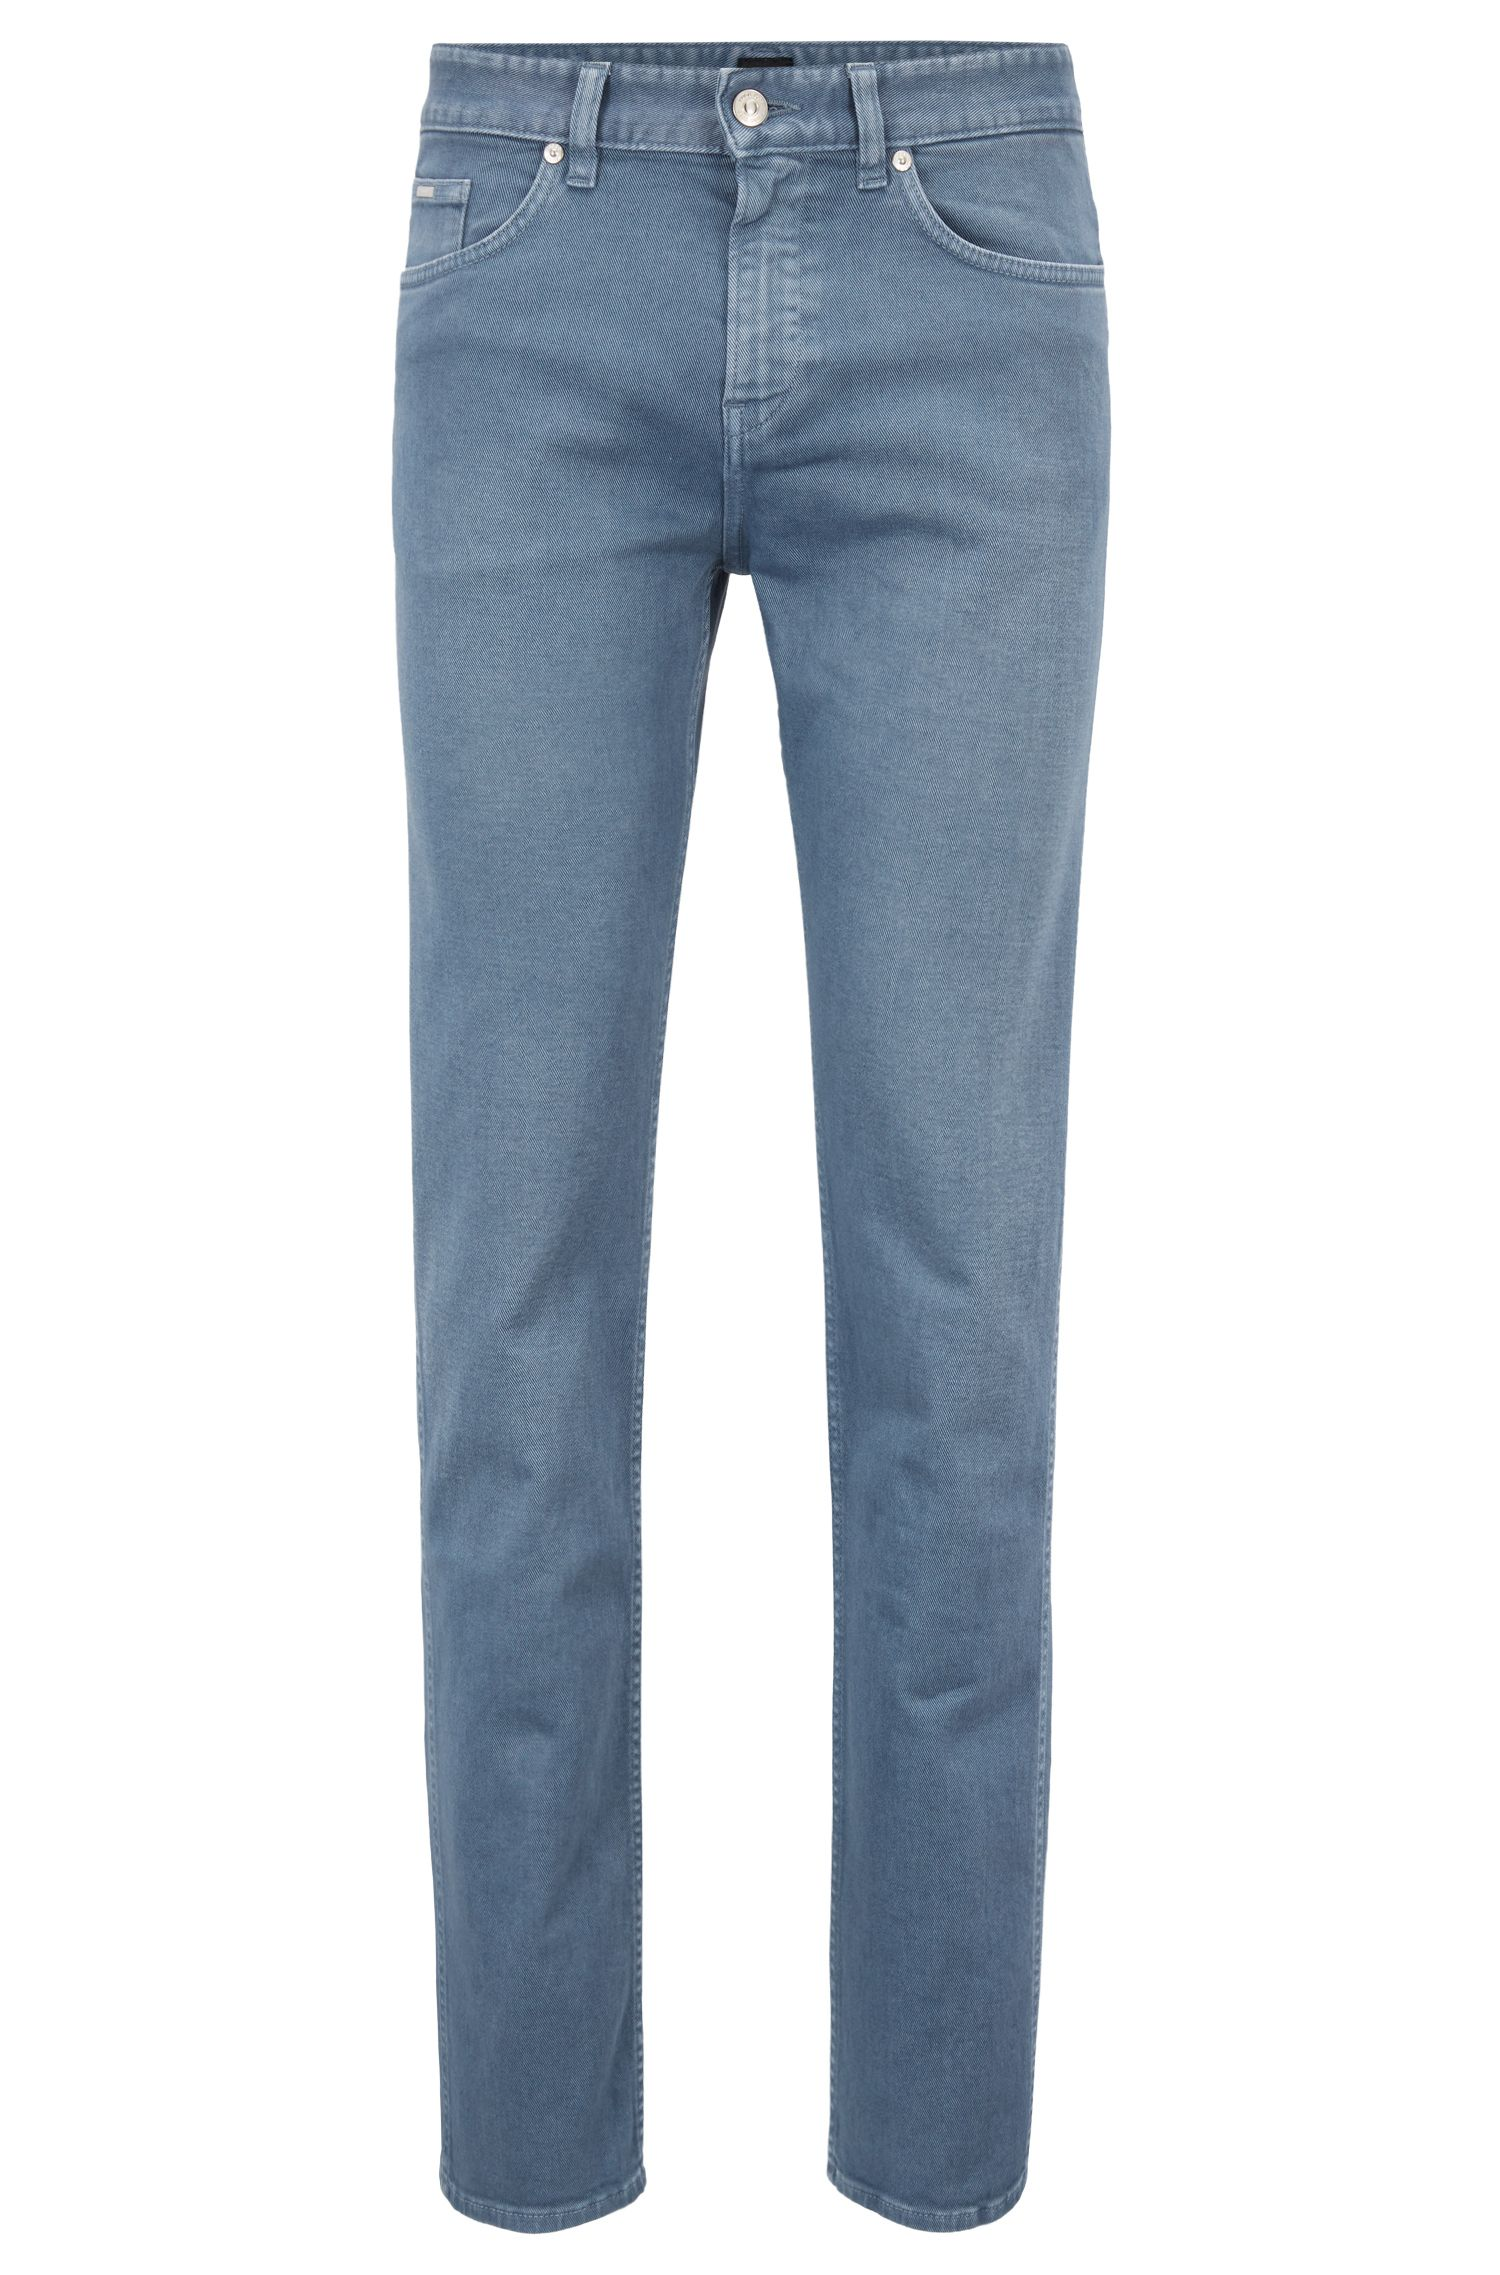 Jean Slim Fit en denim stretch teint